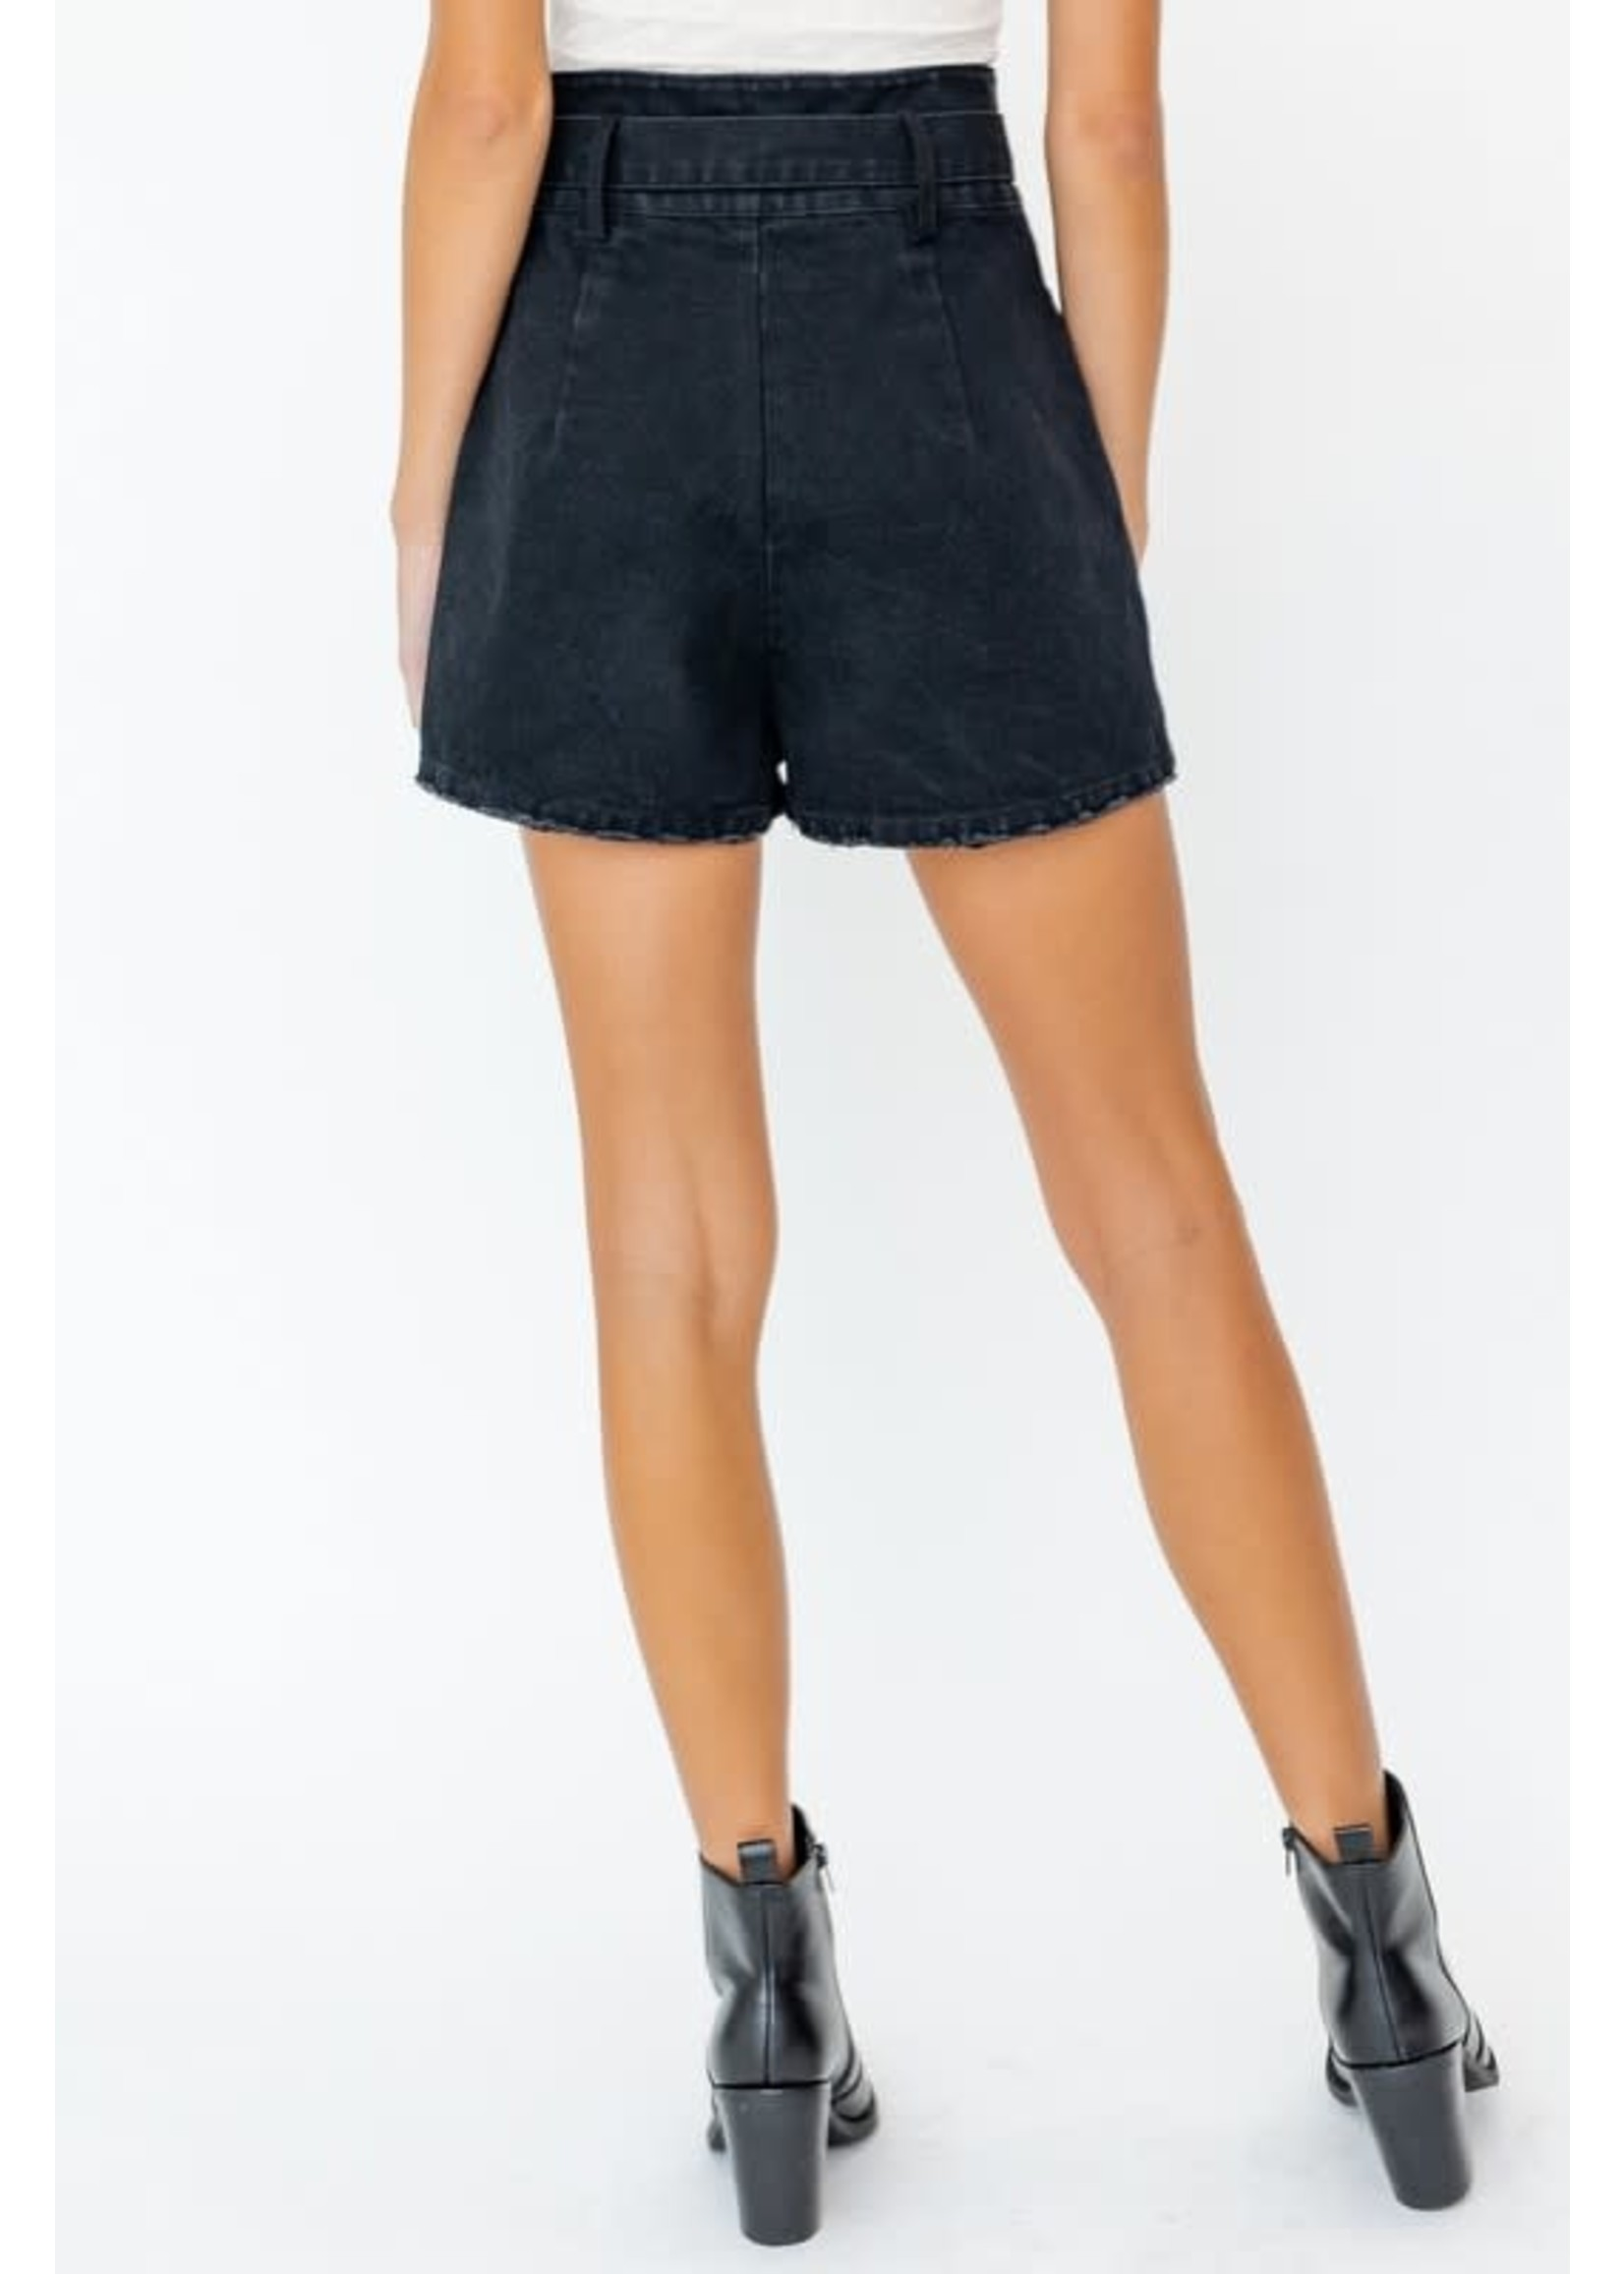 Le Lis Paperbag Buckle Detailed Shorts - MP3722